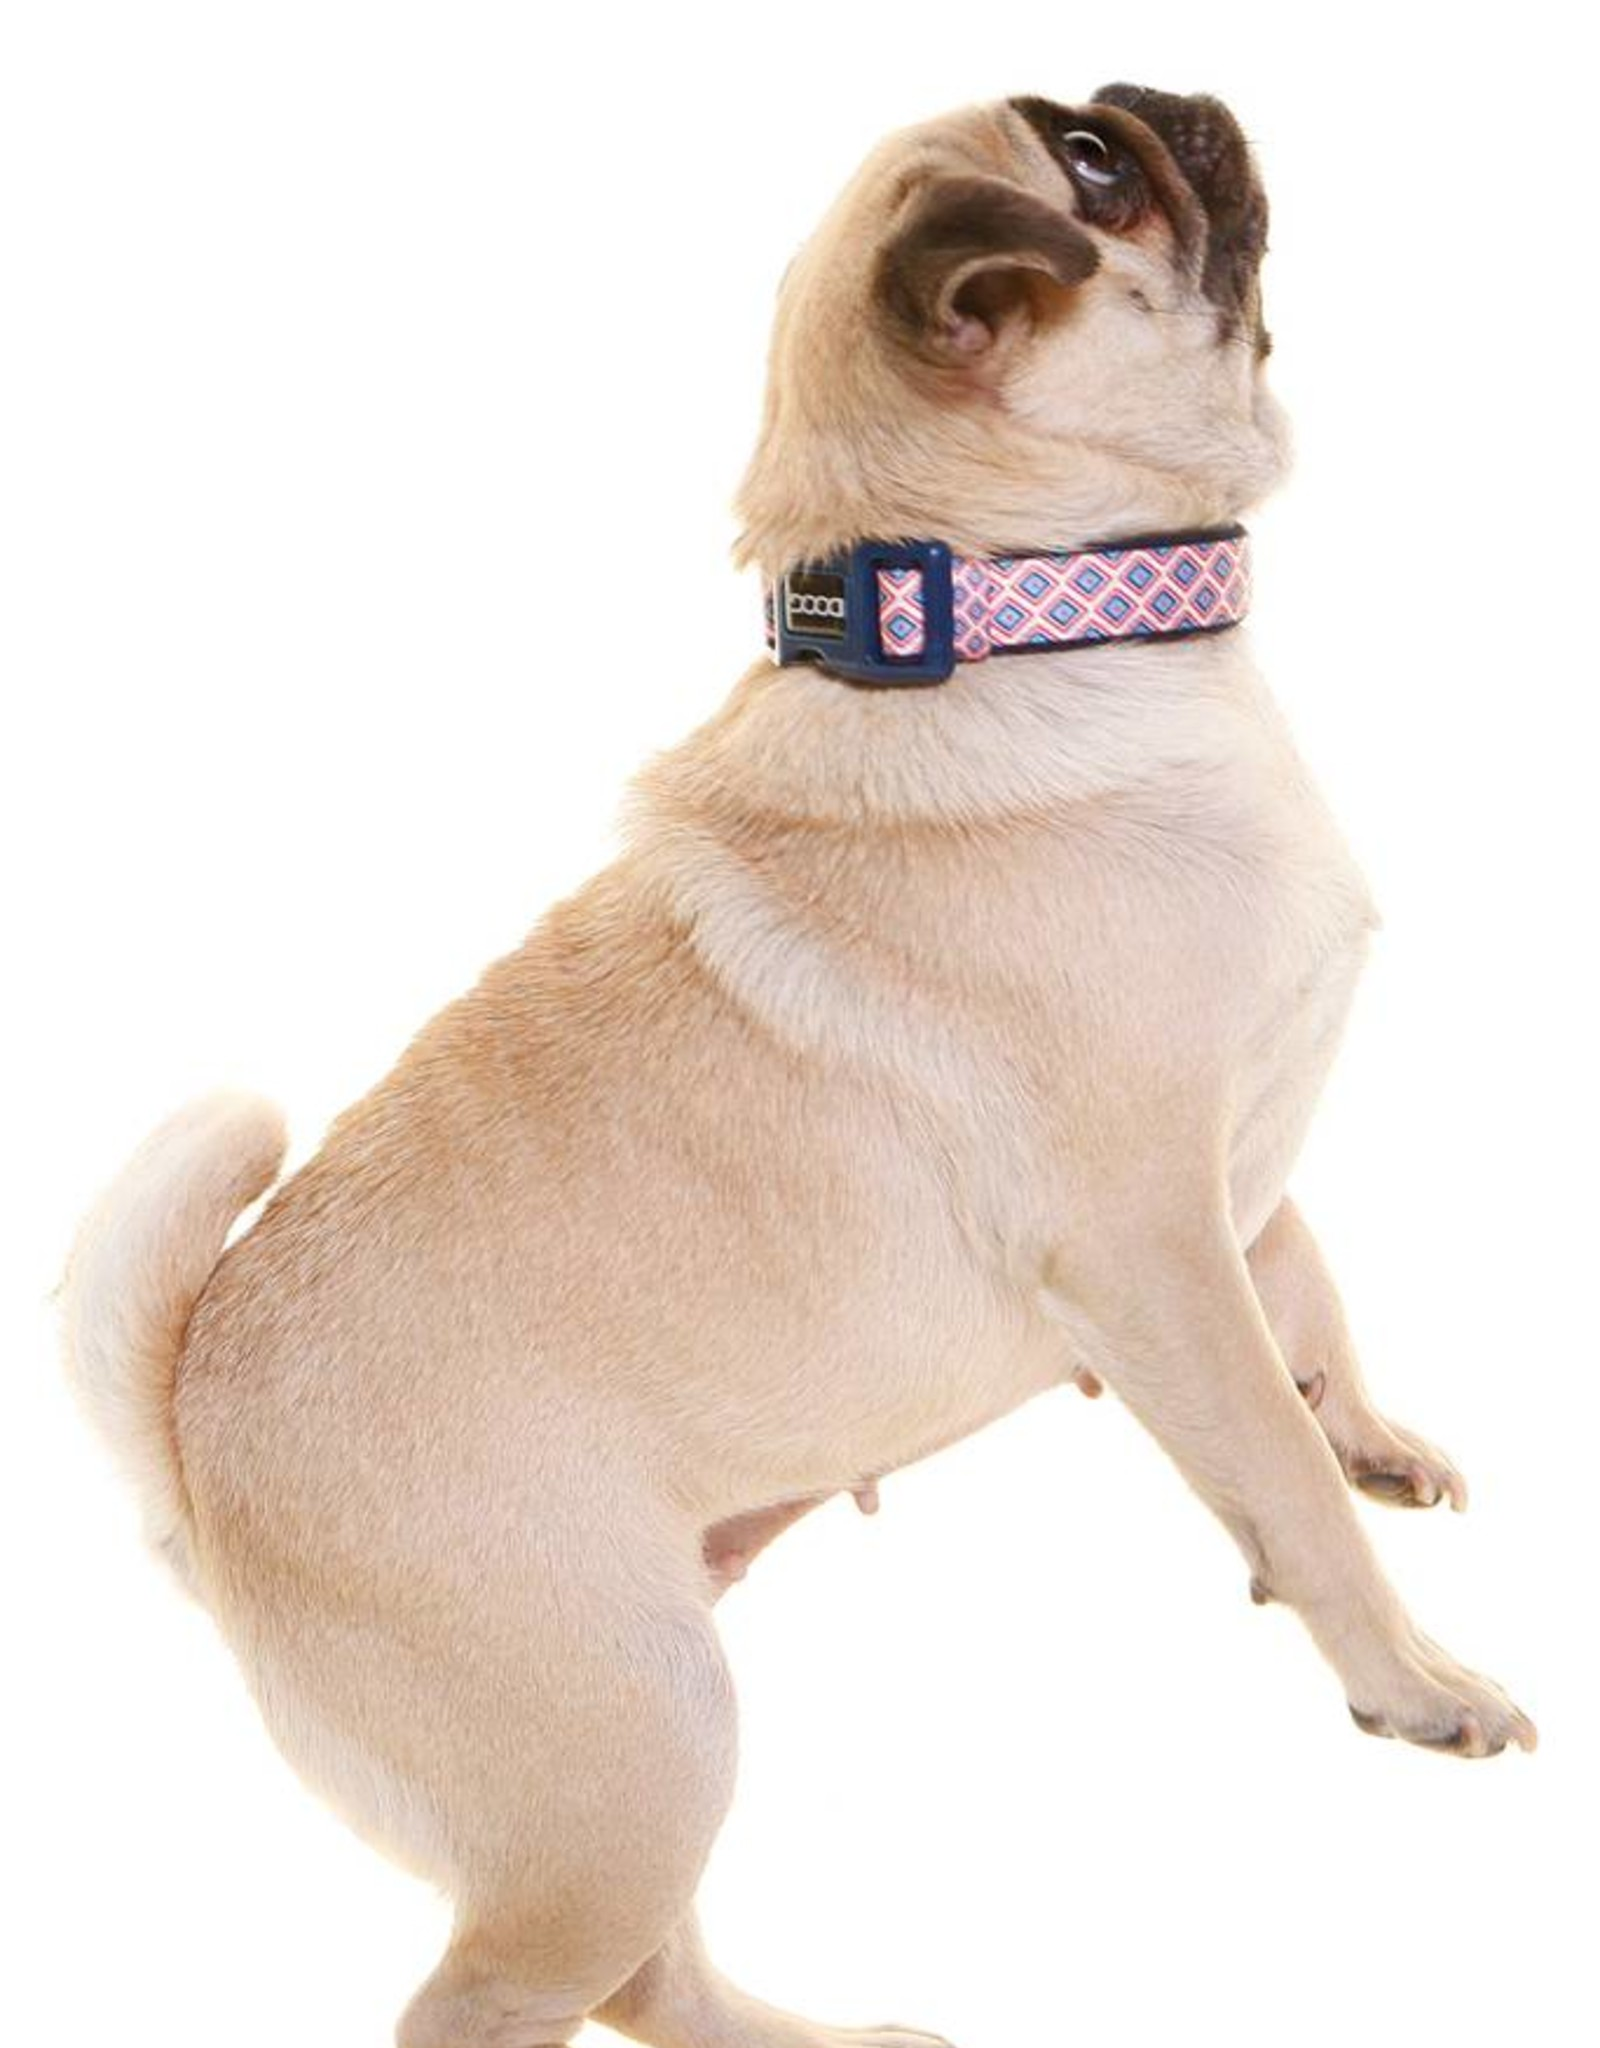 DOOG Doog | Dog Collar - Gromit